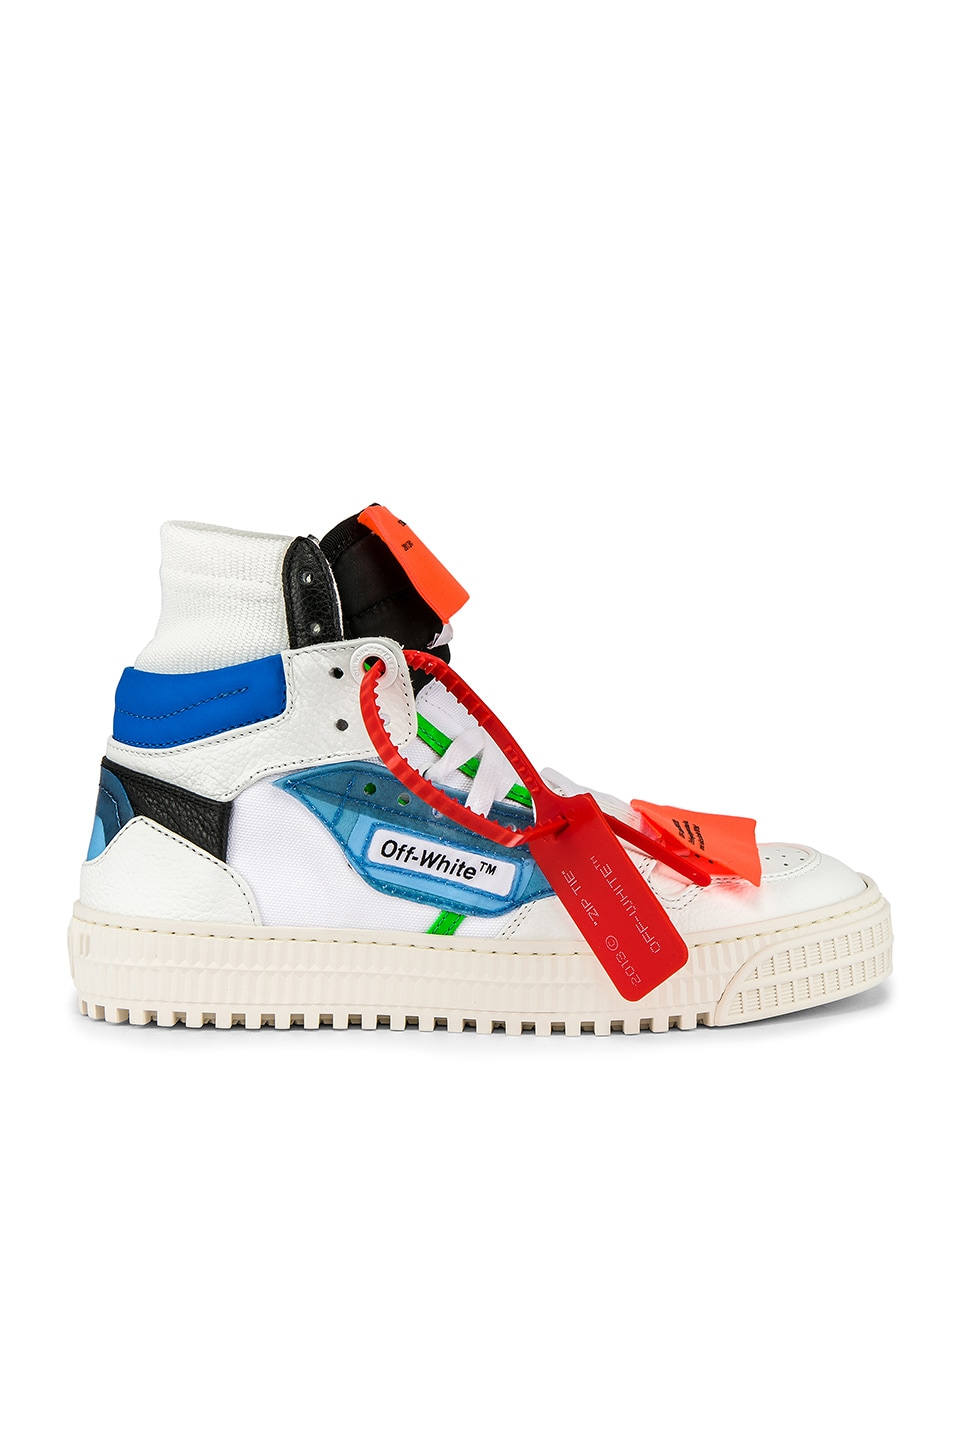 OFF-WHITE Off Court Sneaker in White & Blue